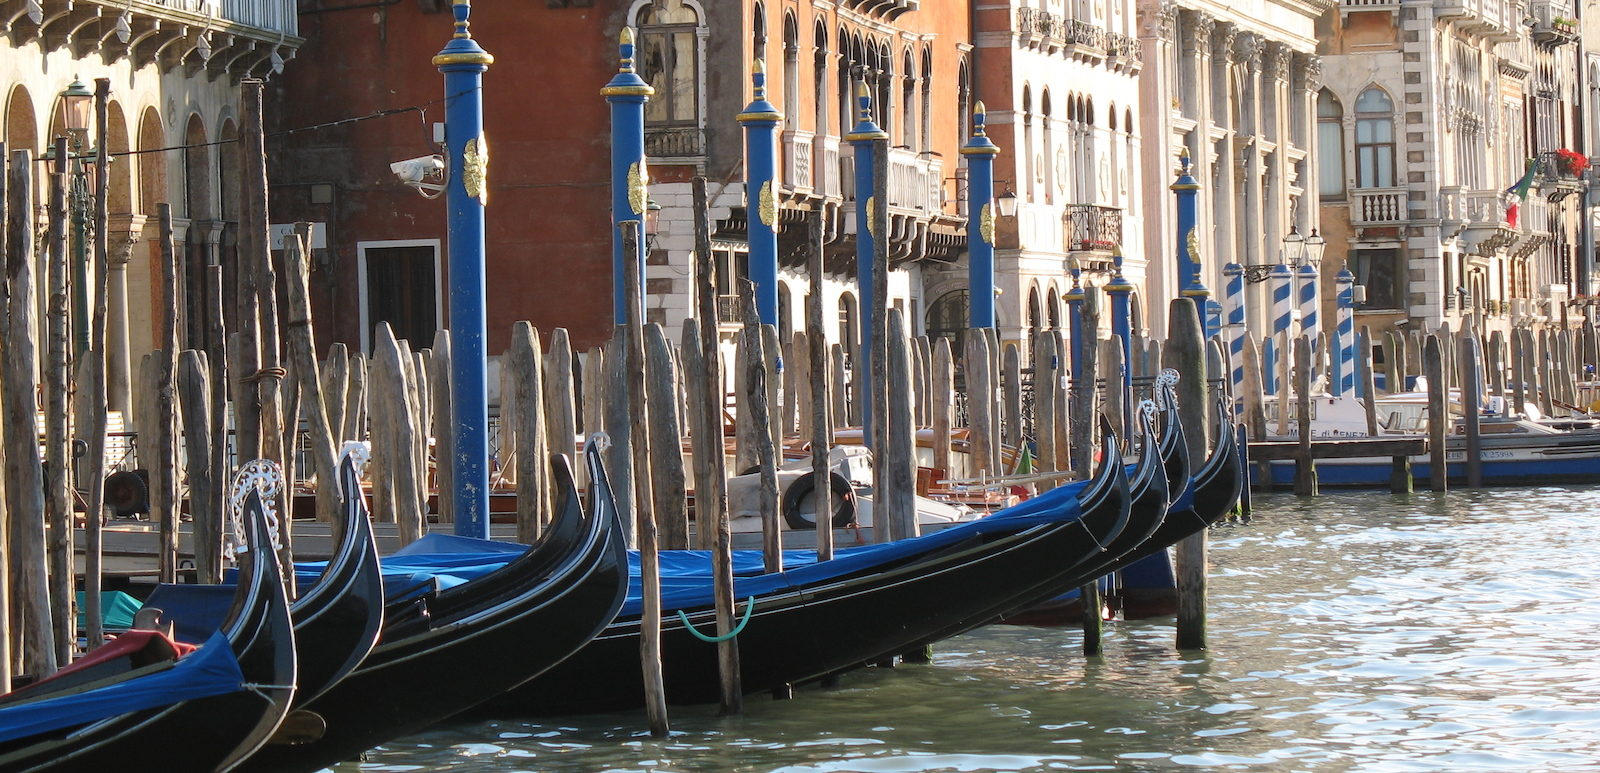 photo of Gondolas in Venice